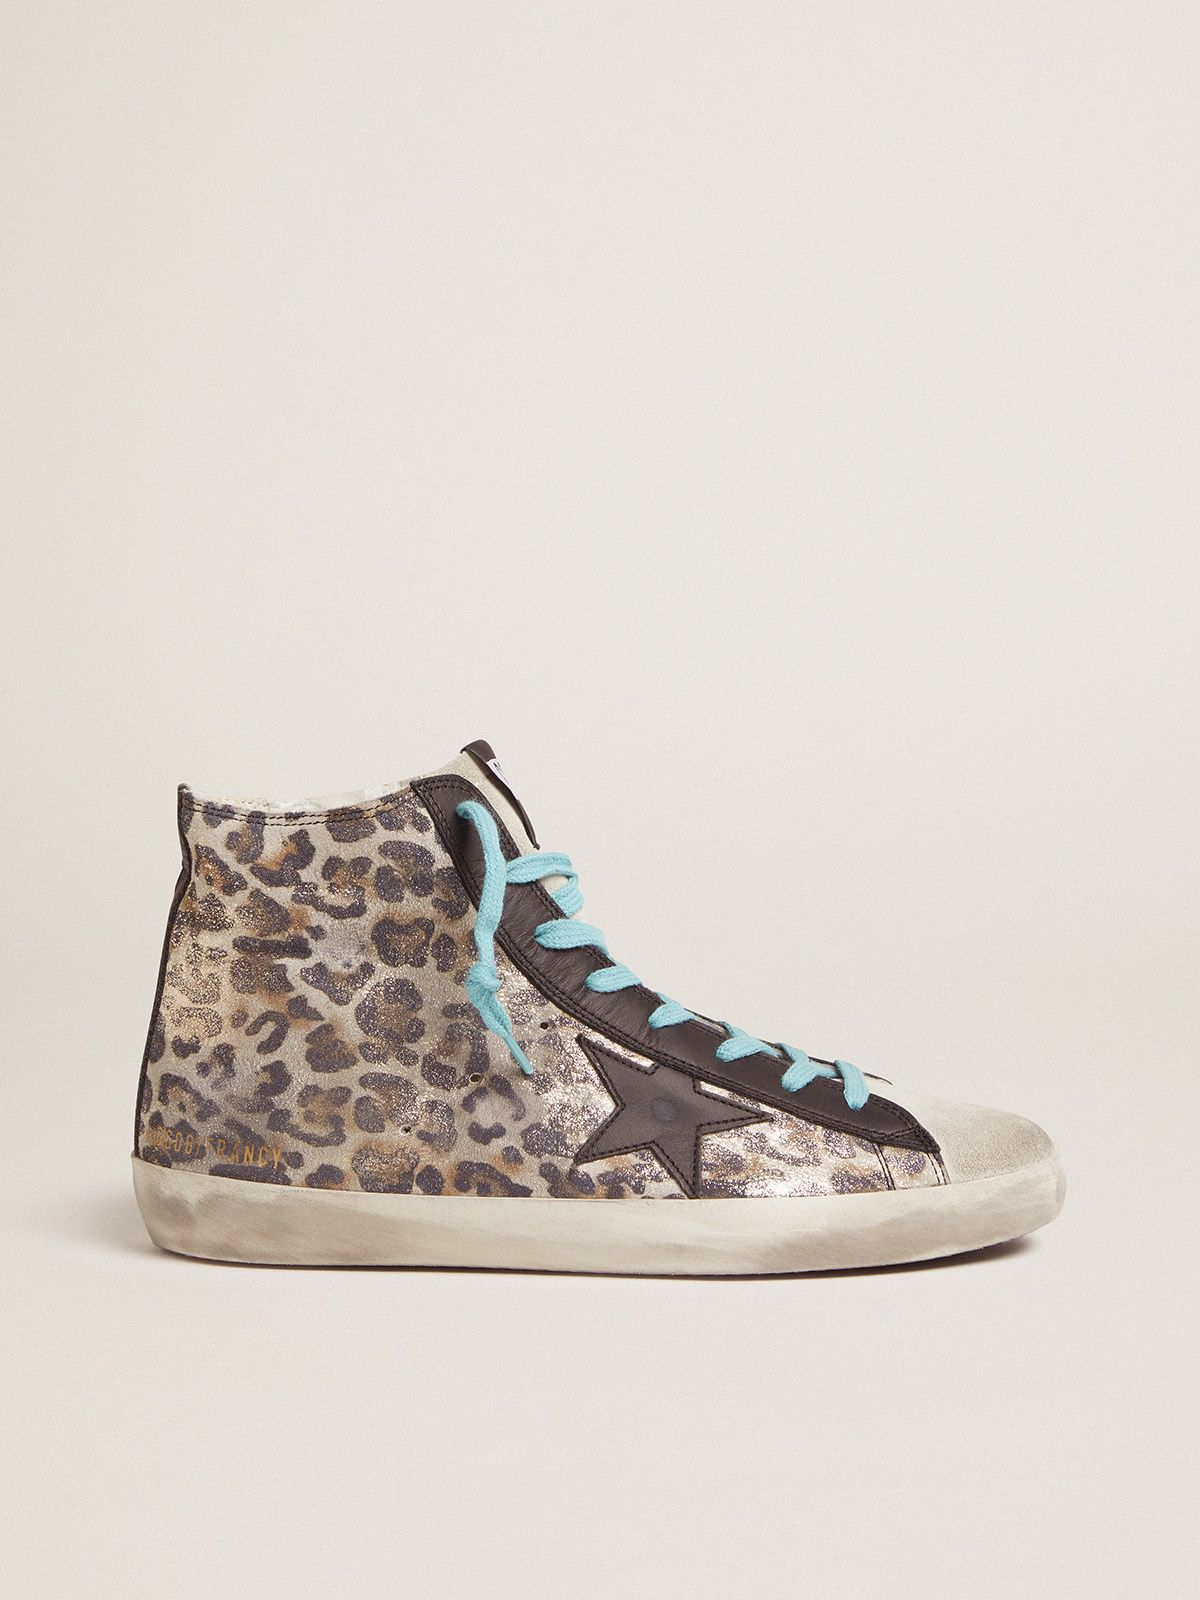 Leopard-print Francy sneakers with blue laces